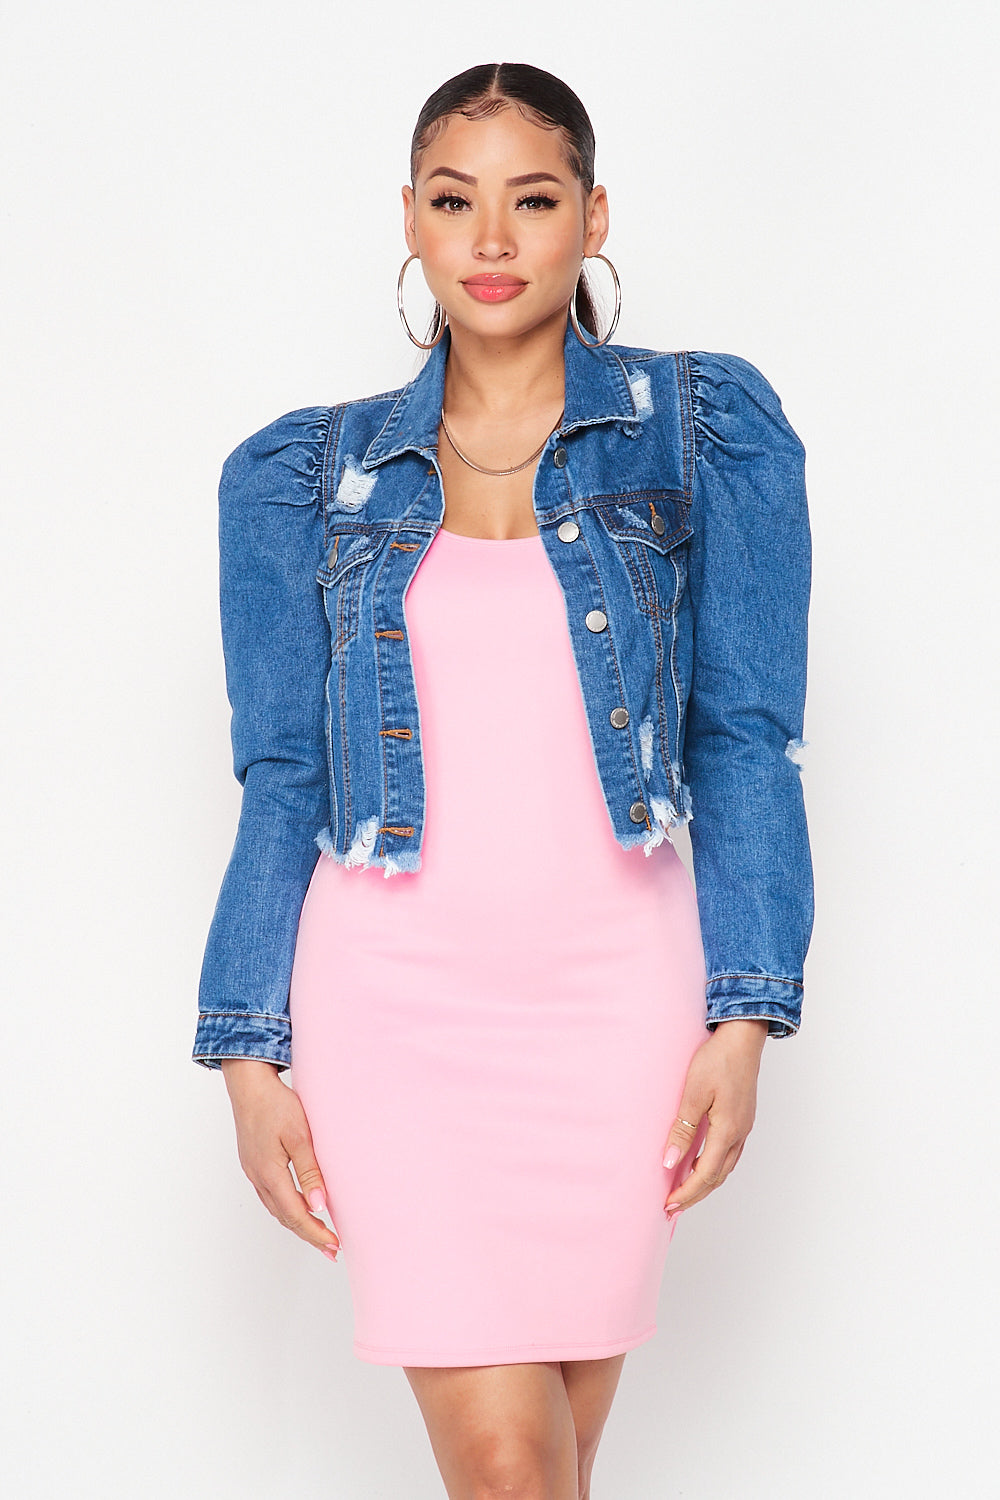 Puff Sleeve Denim Jacket in Medium Blue - Fashion House USA